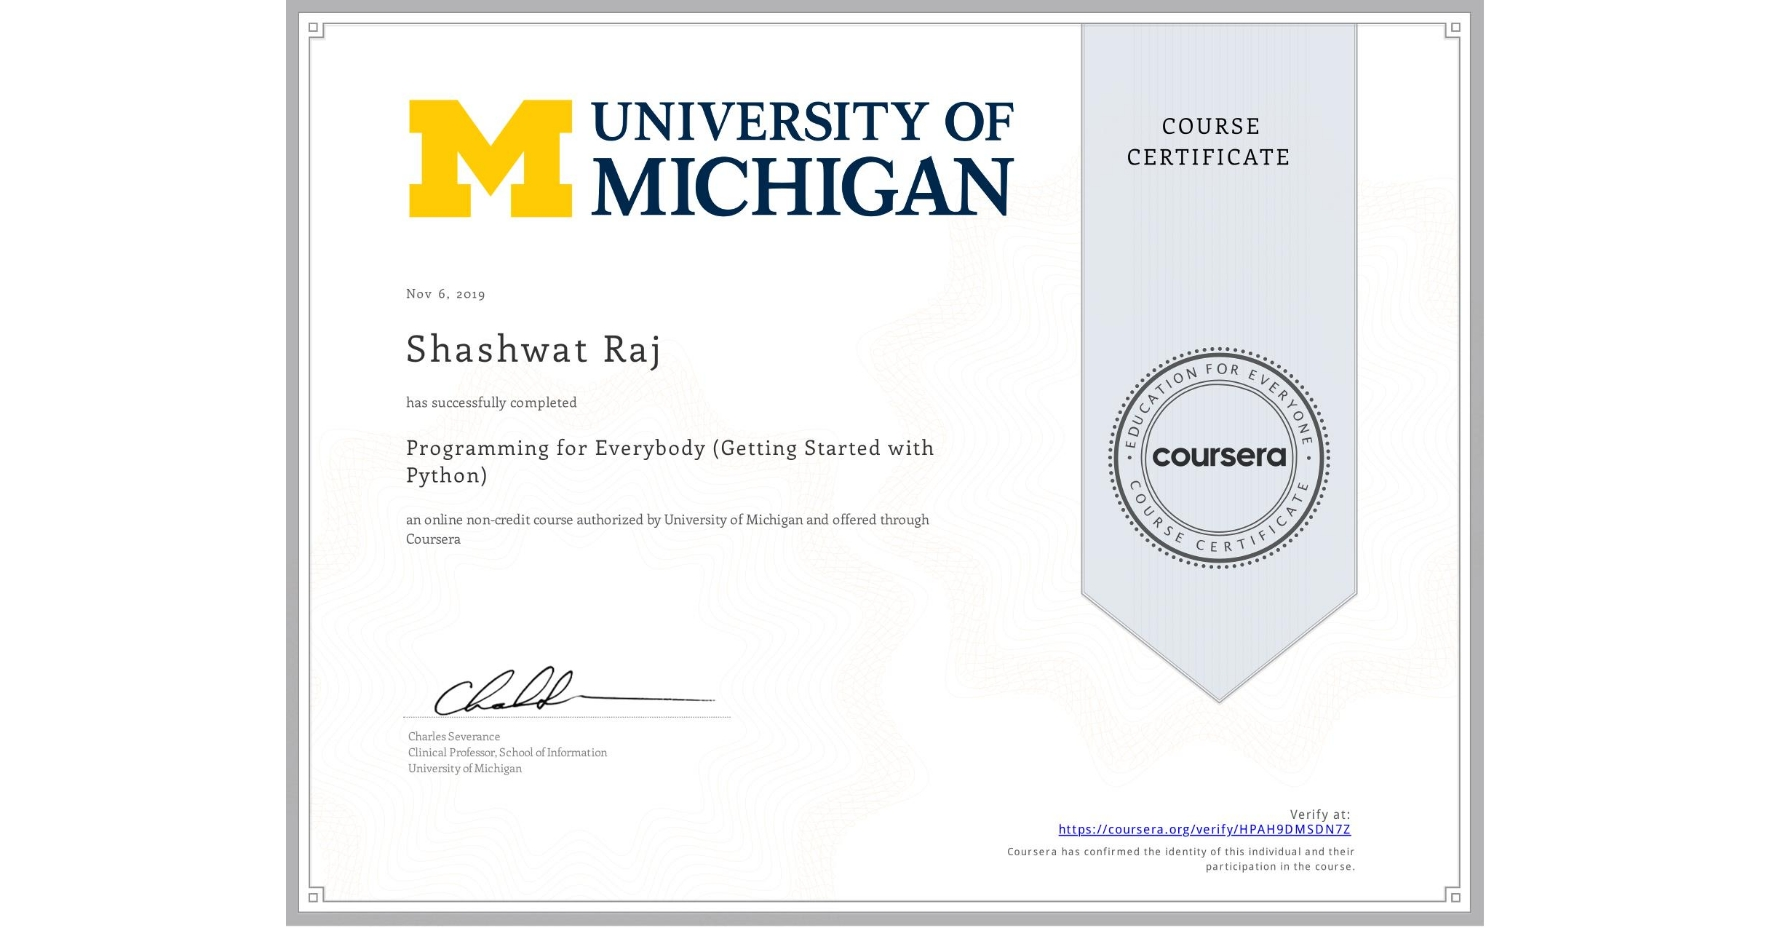 View certificate for Shashwat Raj, Programming for Everybody (Getting Started with Python), an online non-credit course authorized by University of Michigan and offered through Coursera